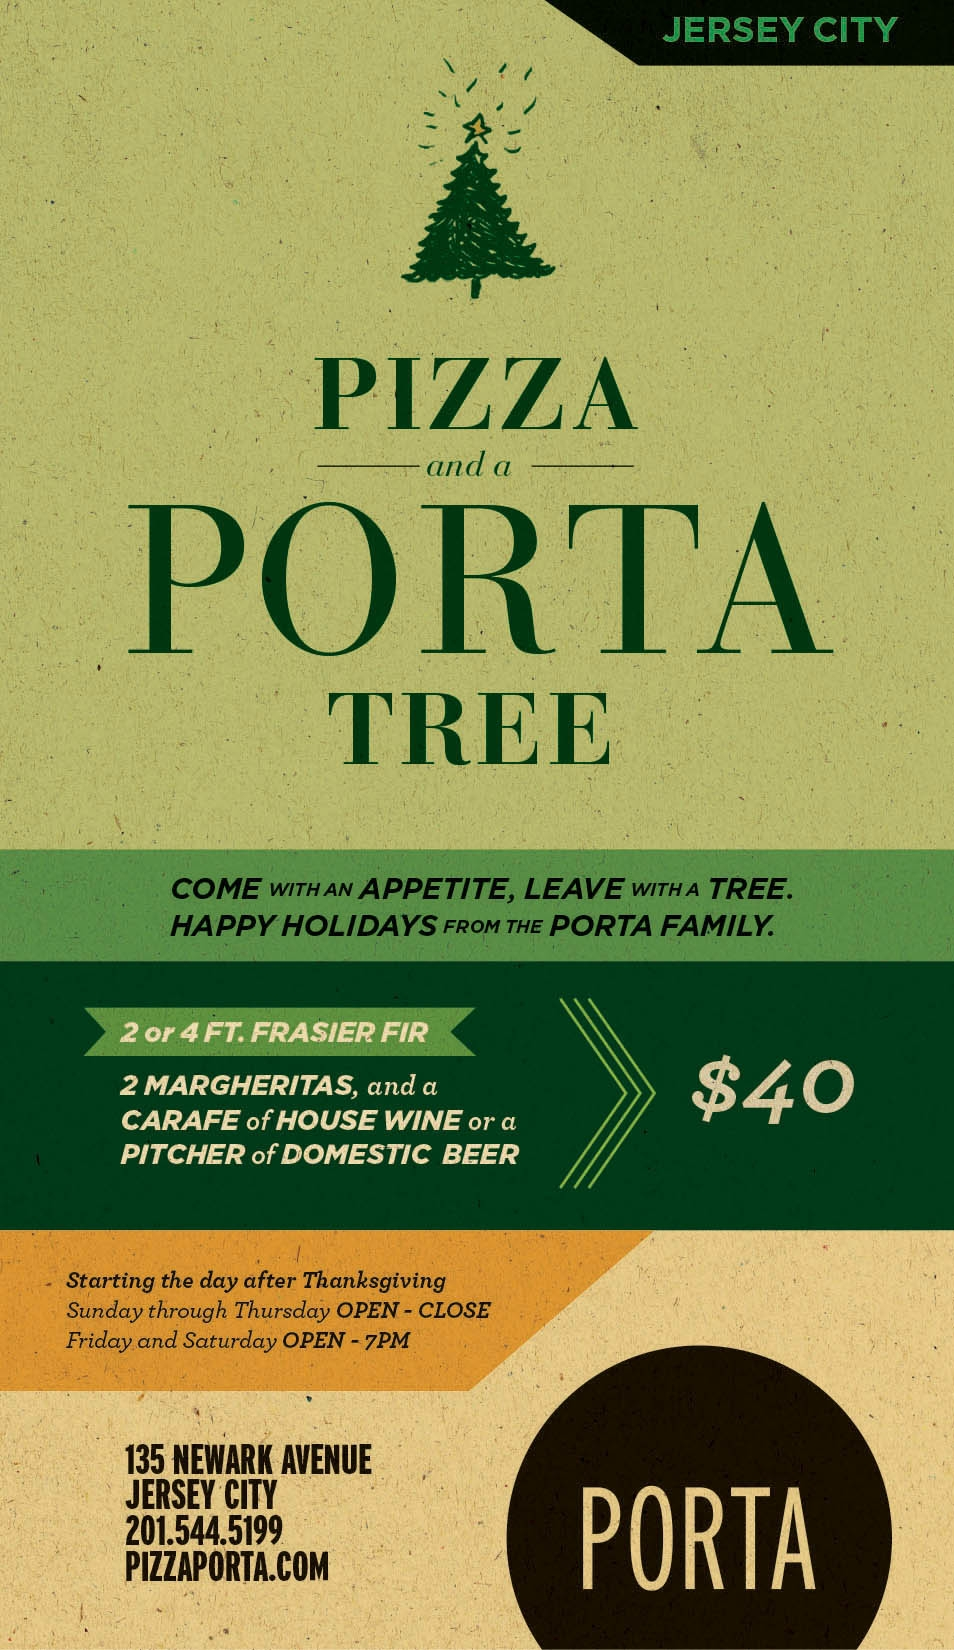 pizza-porta-tree